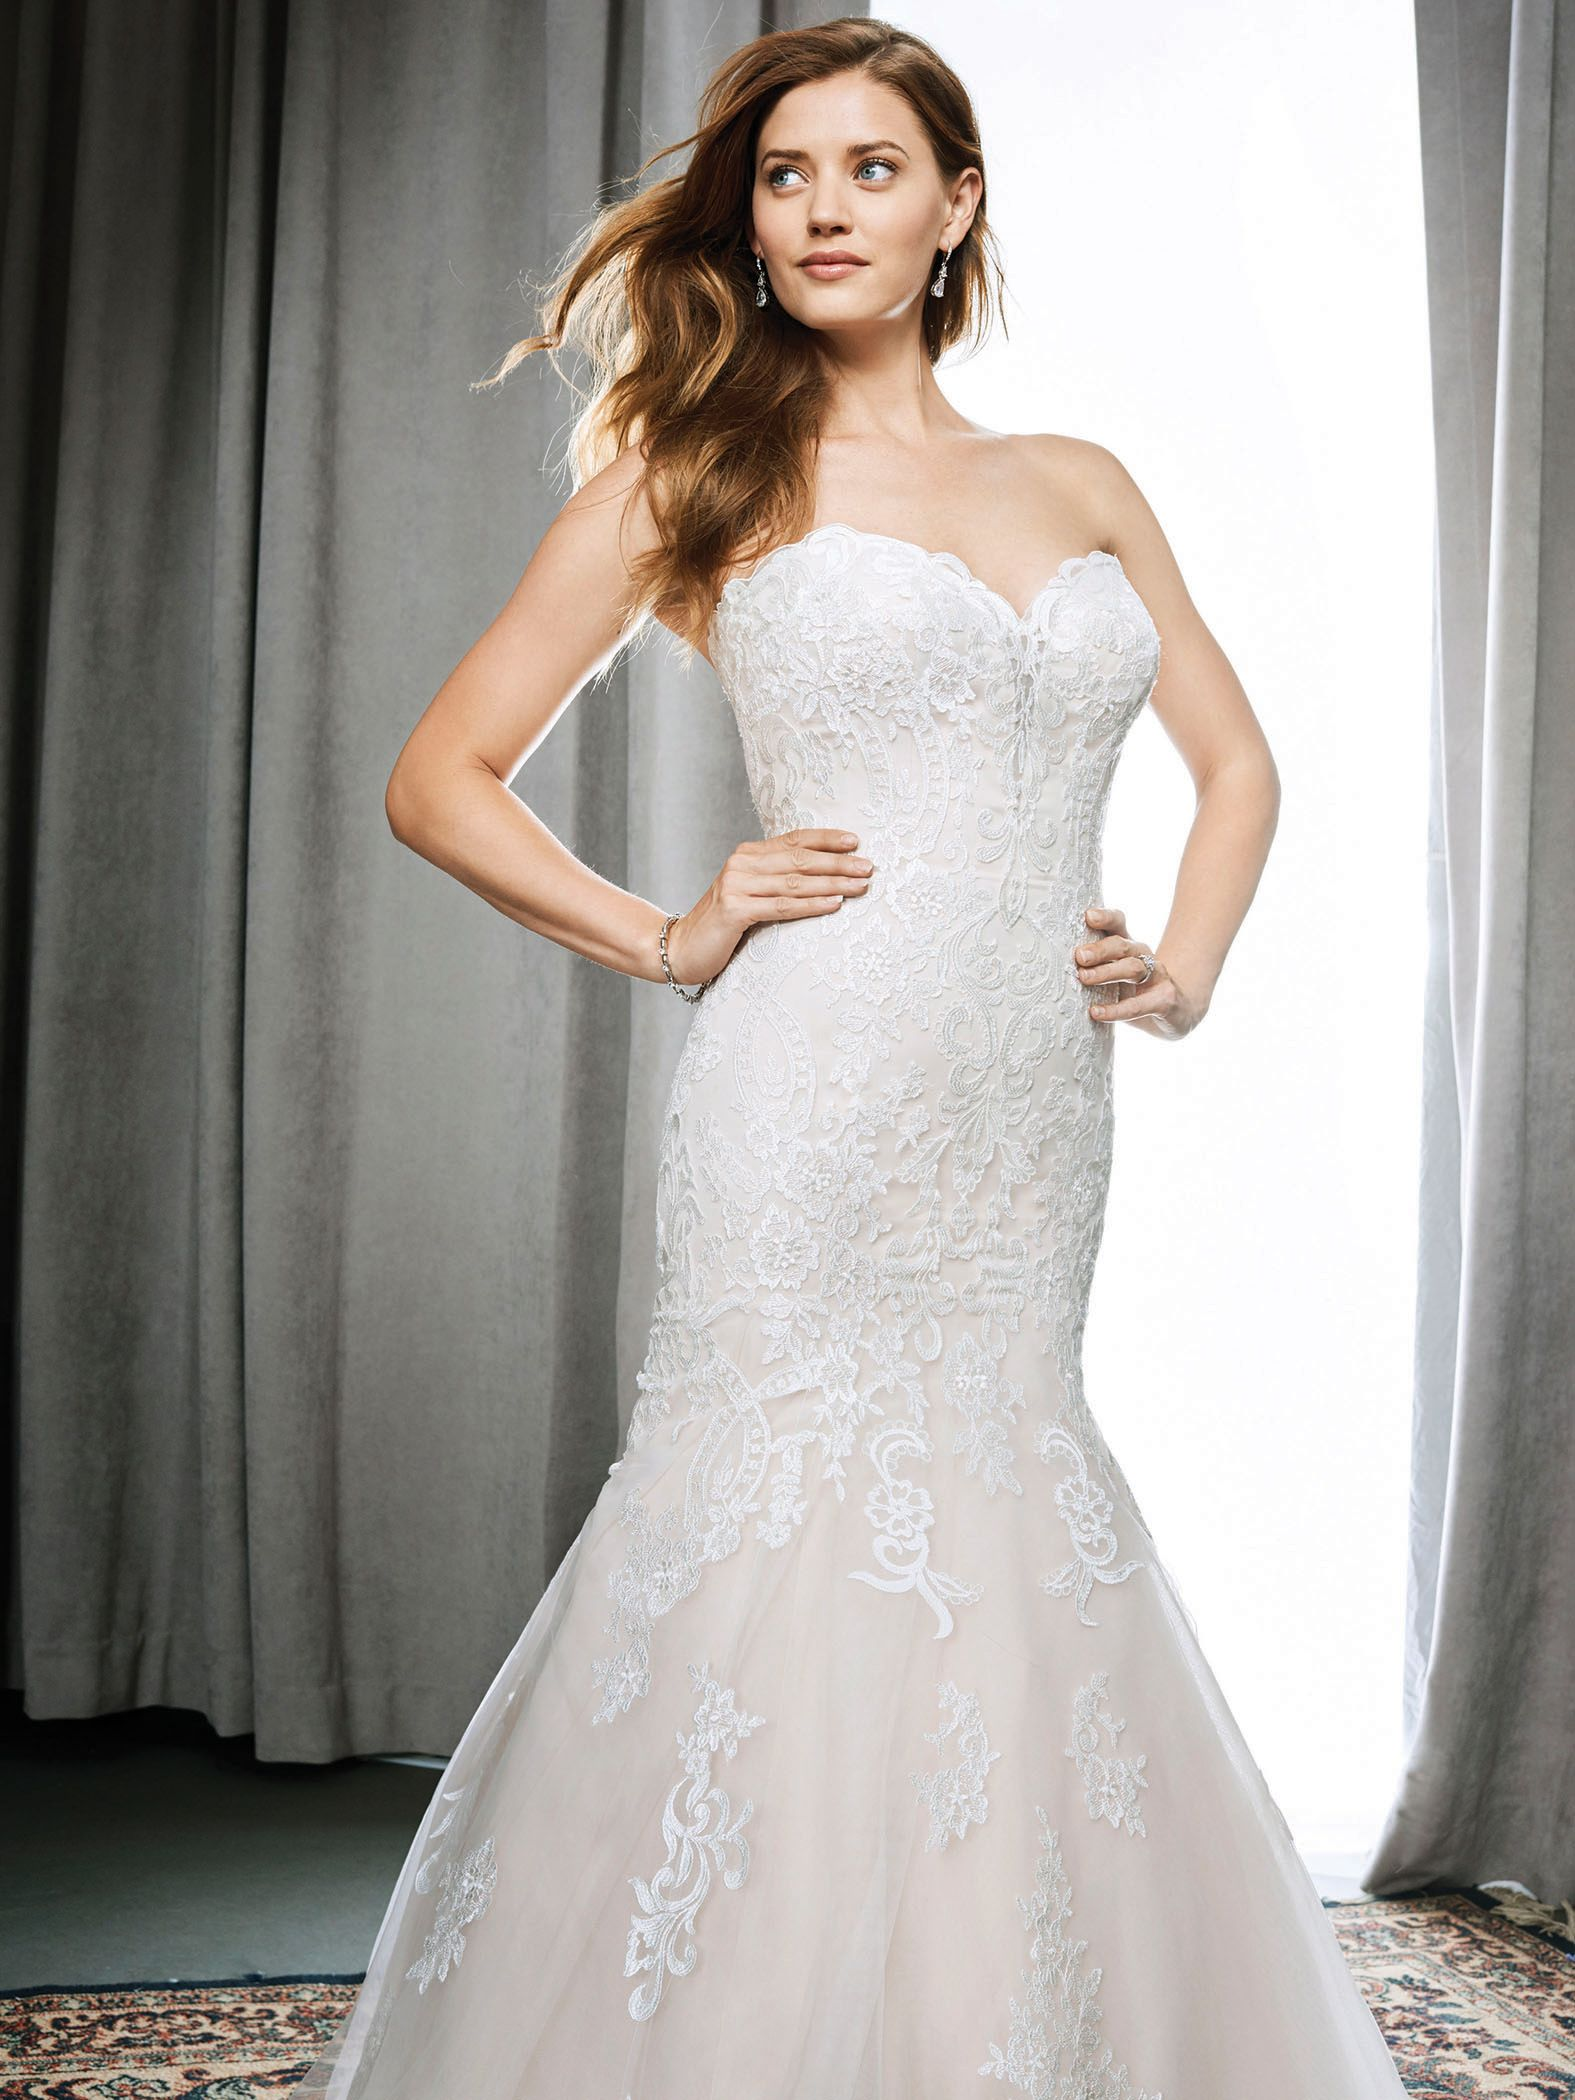 Kenneth Winston Style 1705 | fit and flare embroidered cotton lace wedding gown with low v-back | luxurious bridal gown